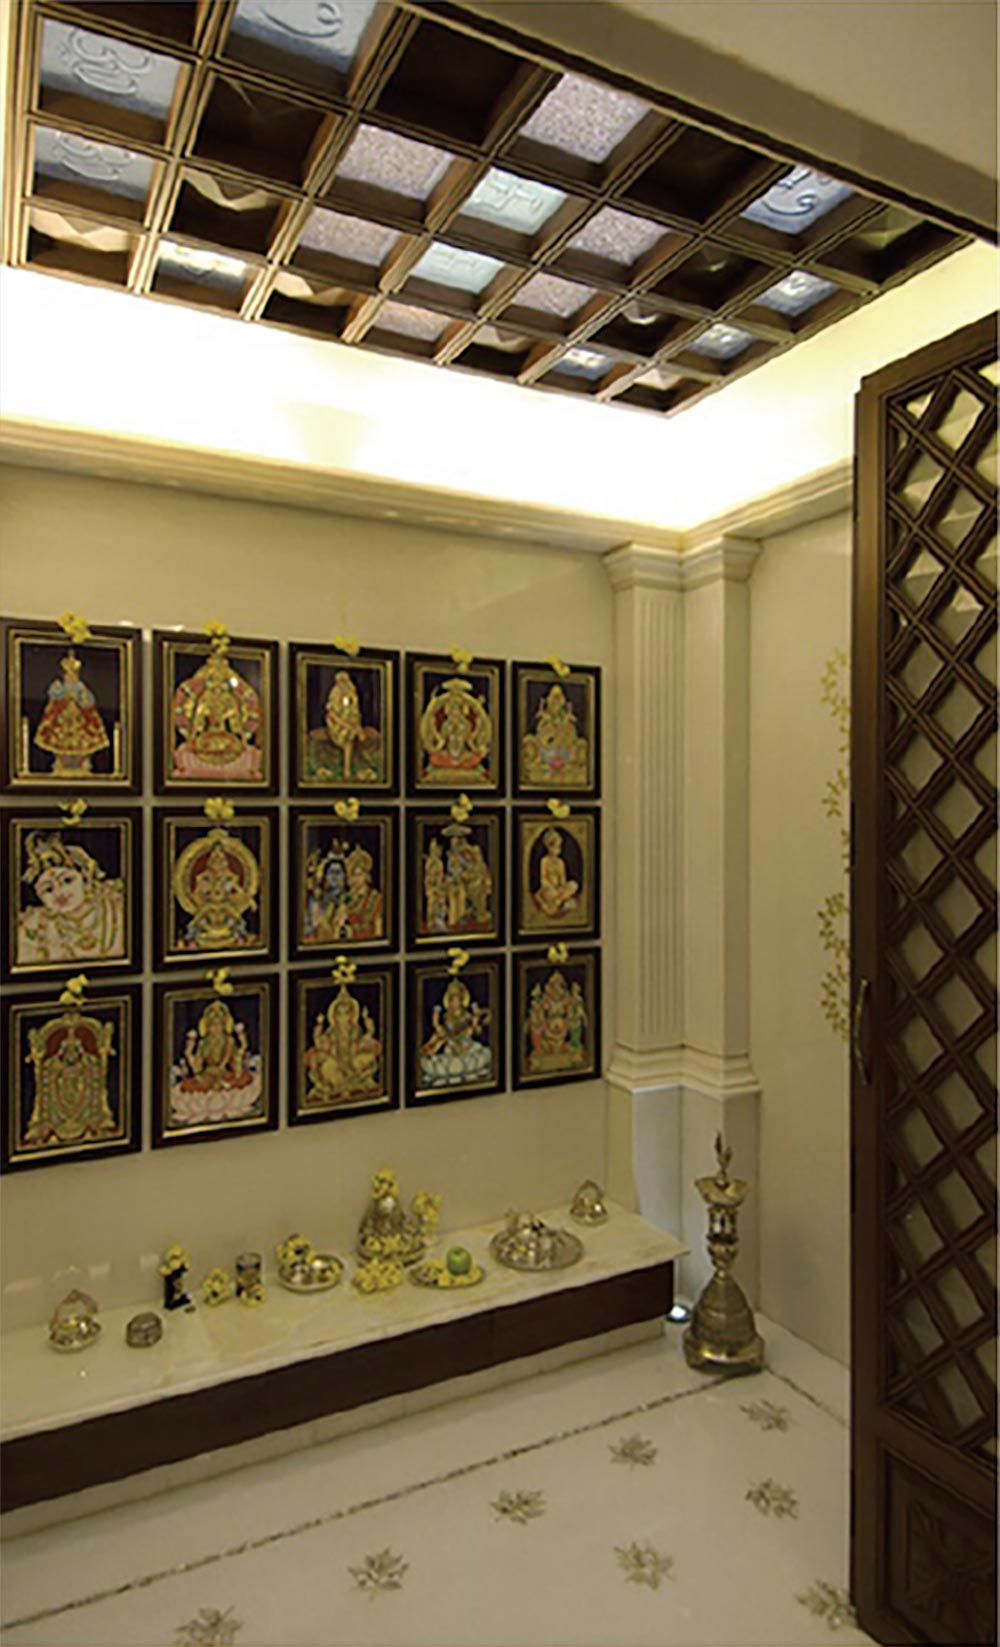 Prayer Room Design Ideas: Pin By ASHA LATHA On HOME SWEET HOME PART 1